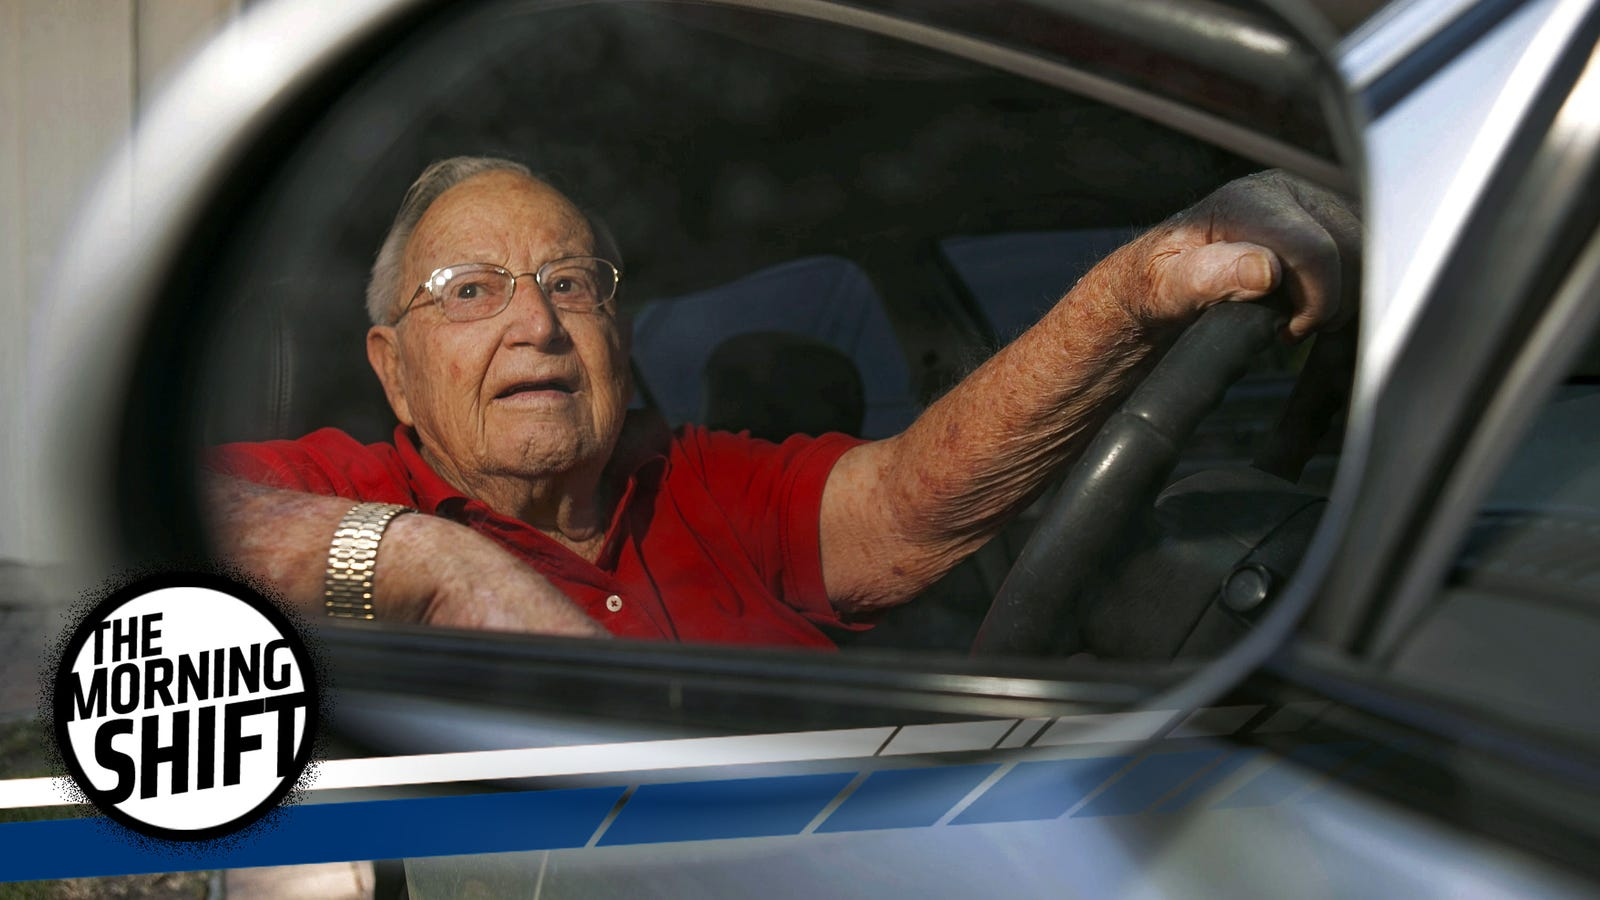 Better Car Safety Features Keep Older People Driving Longer